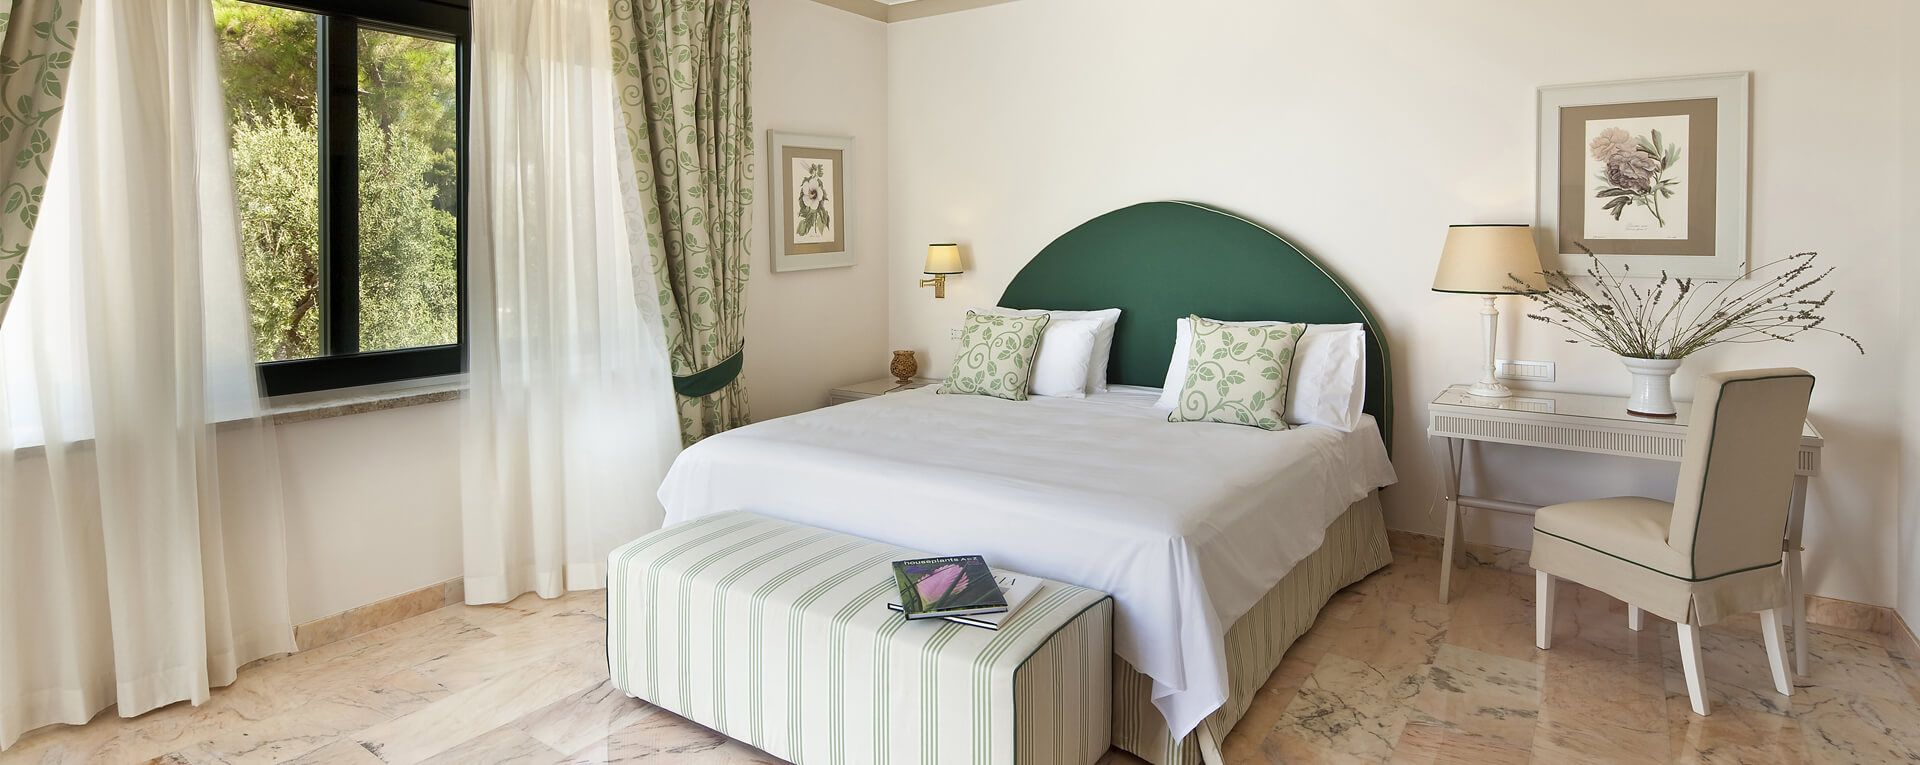 Garden & Villas Resort Ischia